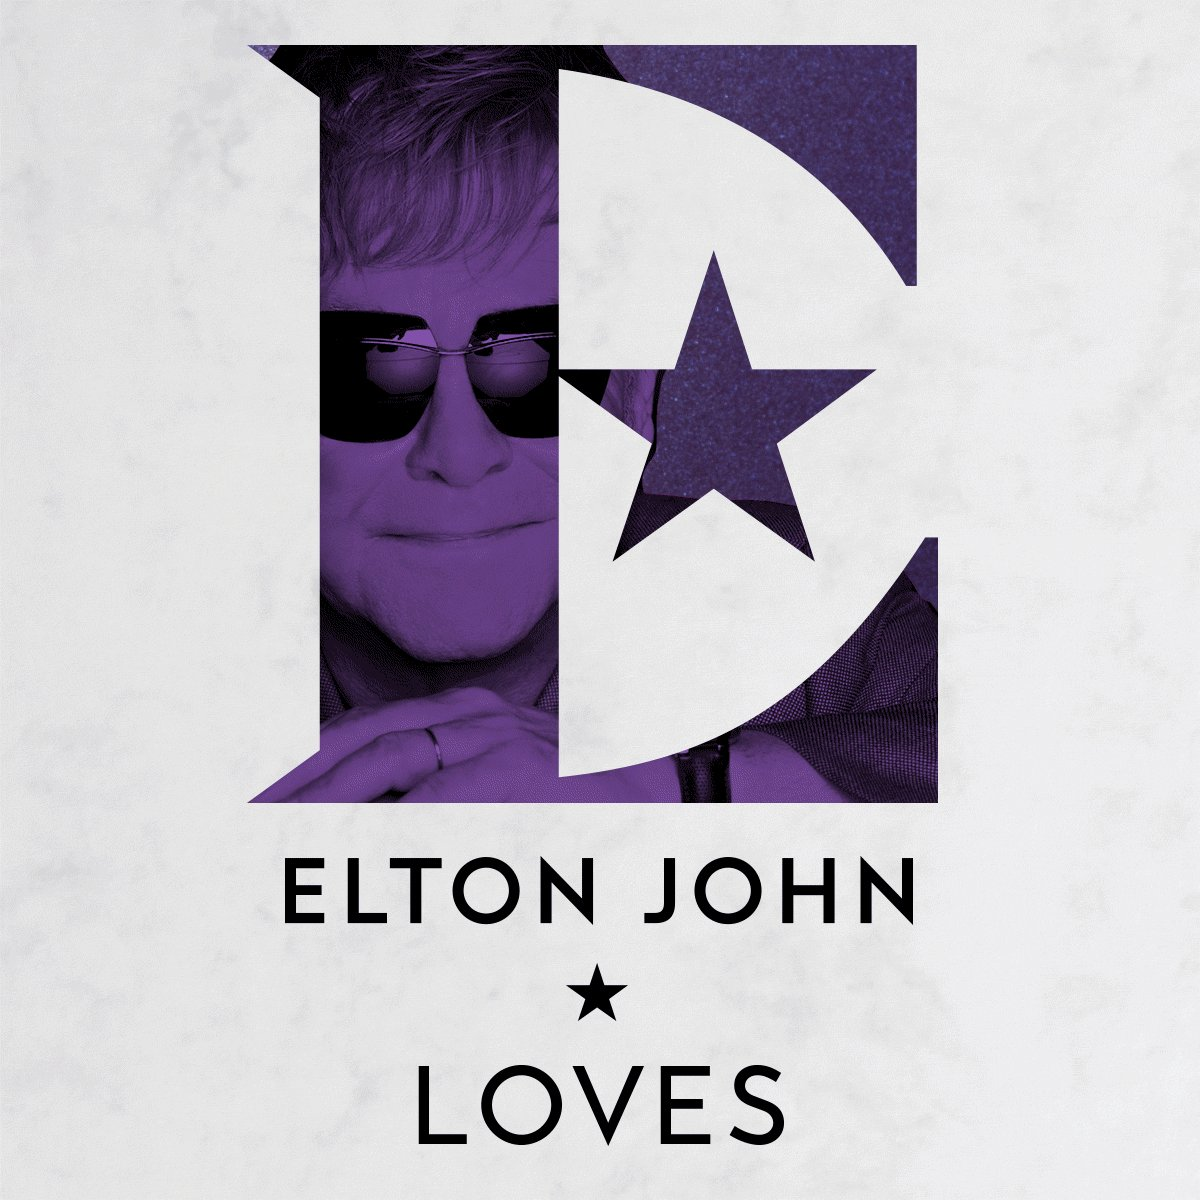 Hear the songs #EltonLoves this #NewMusicFriday, with new tracks on the playlist from @VeraBlueMusic - All The Pretty Girls @JaxJones x @yearsandyears - Play ❤️🎶 eltonjohn.lnk.to/lovesTW